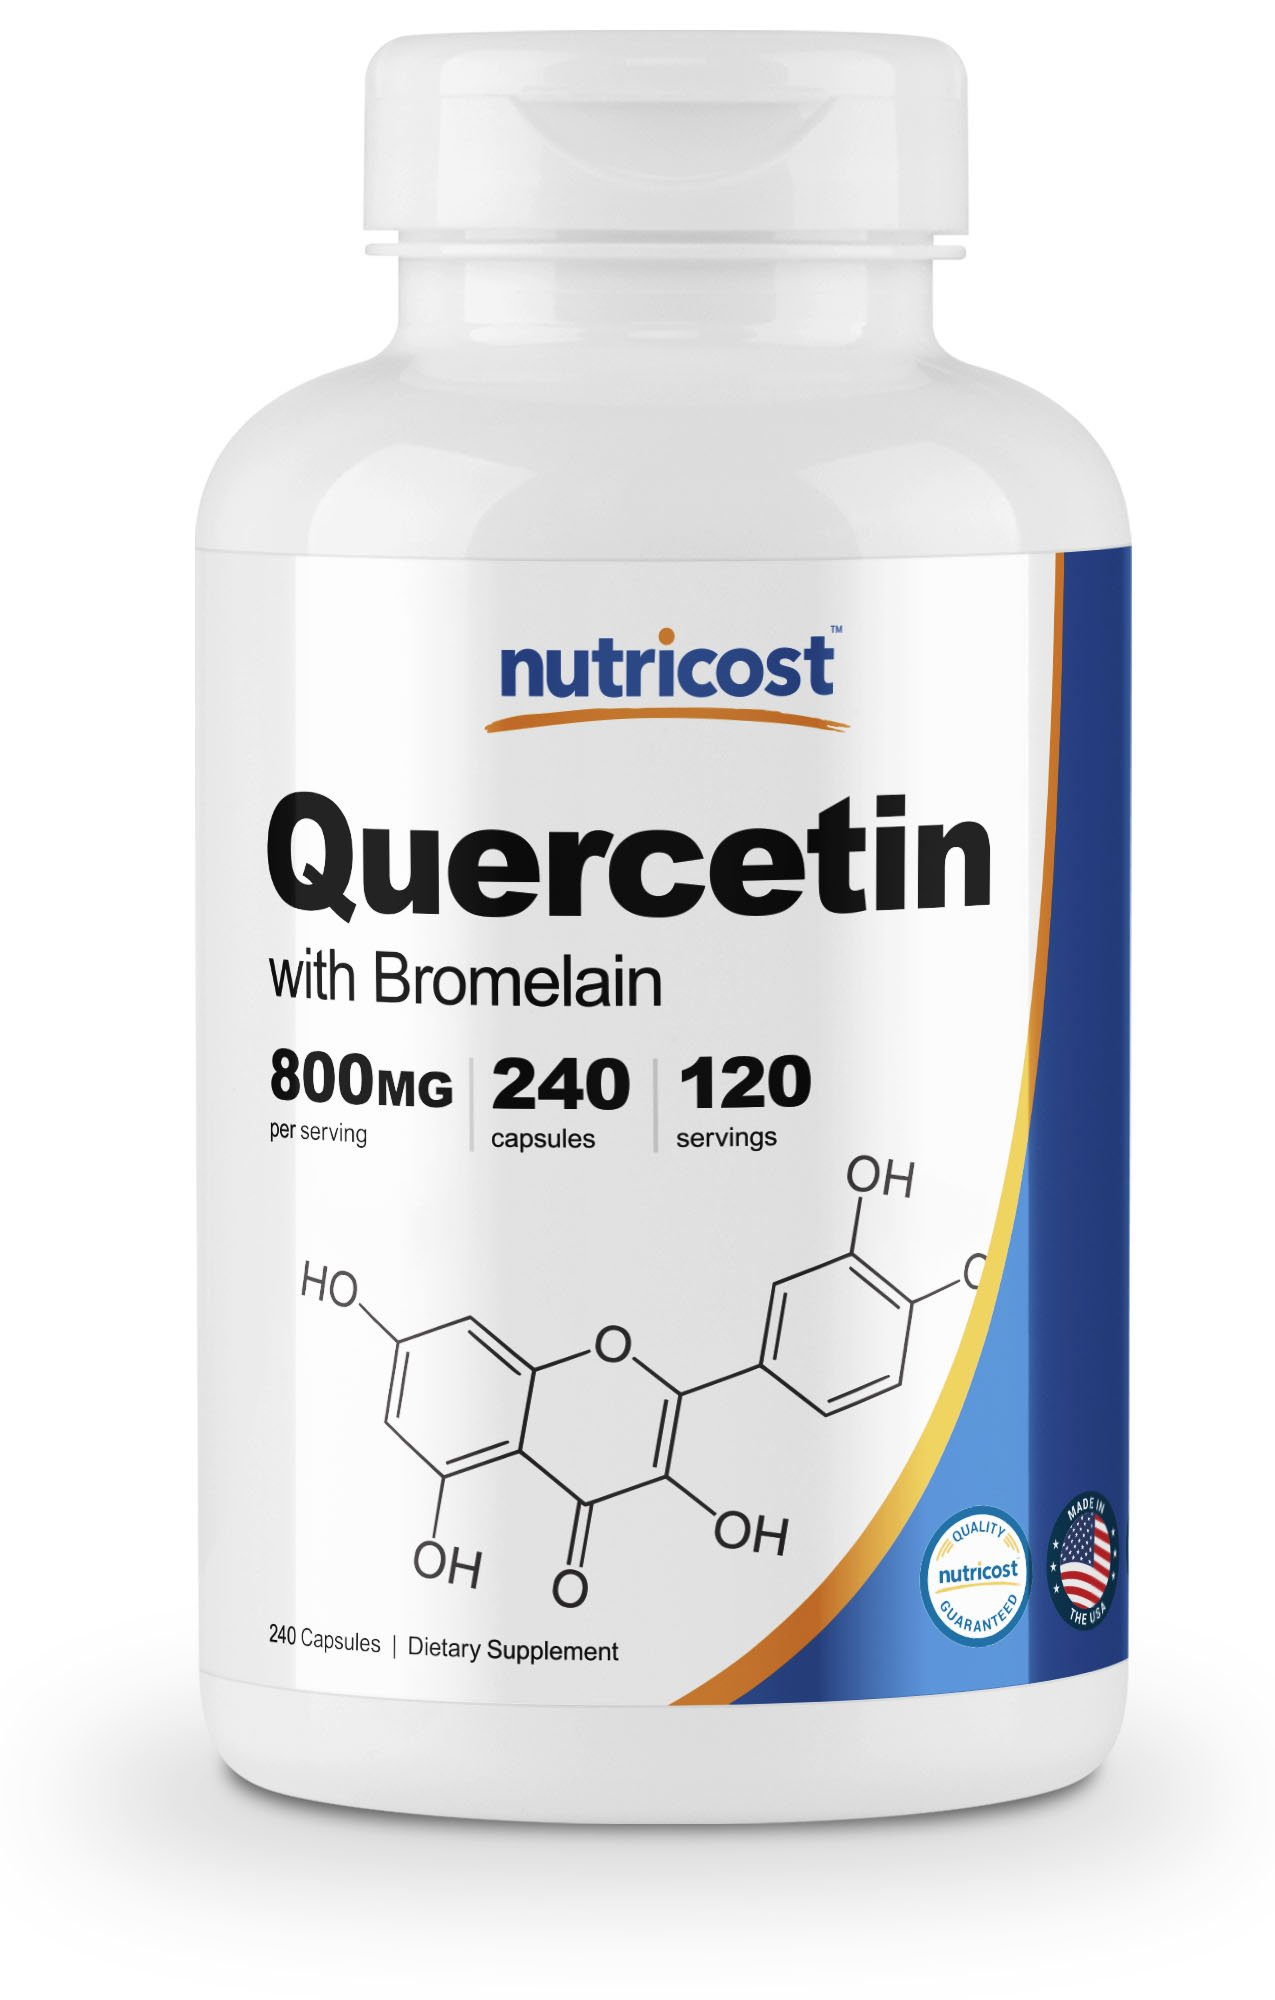 Nutricost Quercetin 800mg, 240 Caps With Bromelain (2 Bottles) by Nutricost (Image #5)